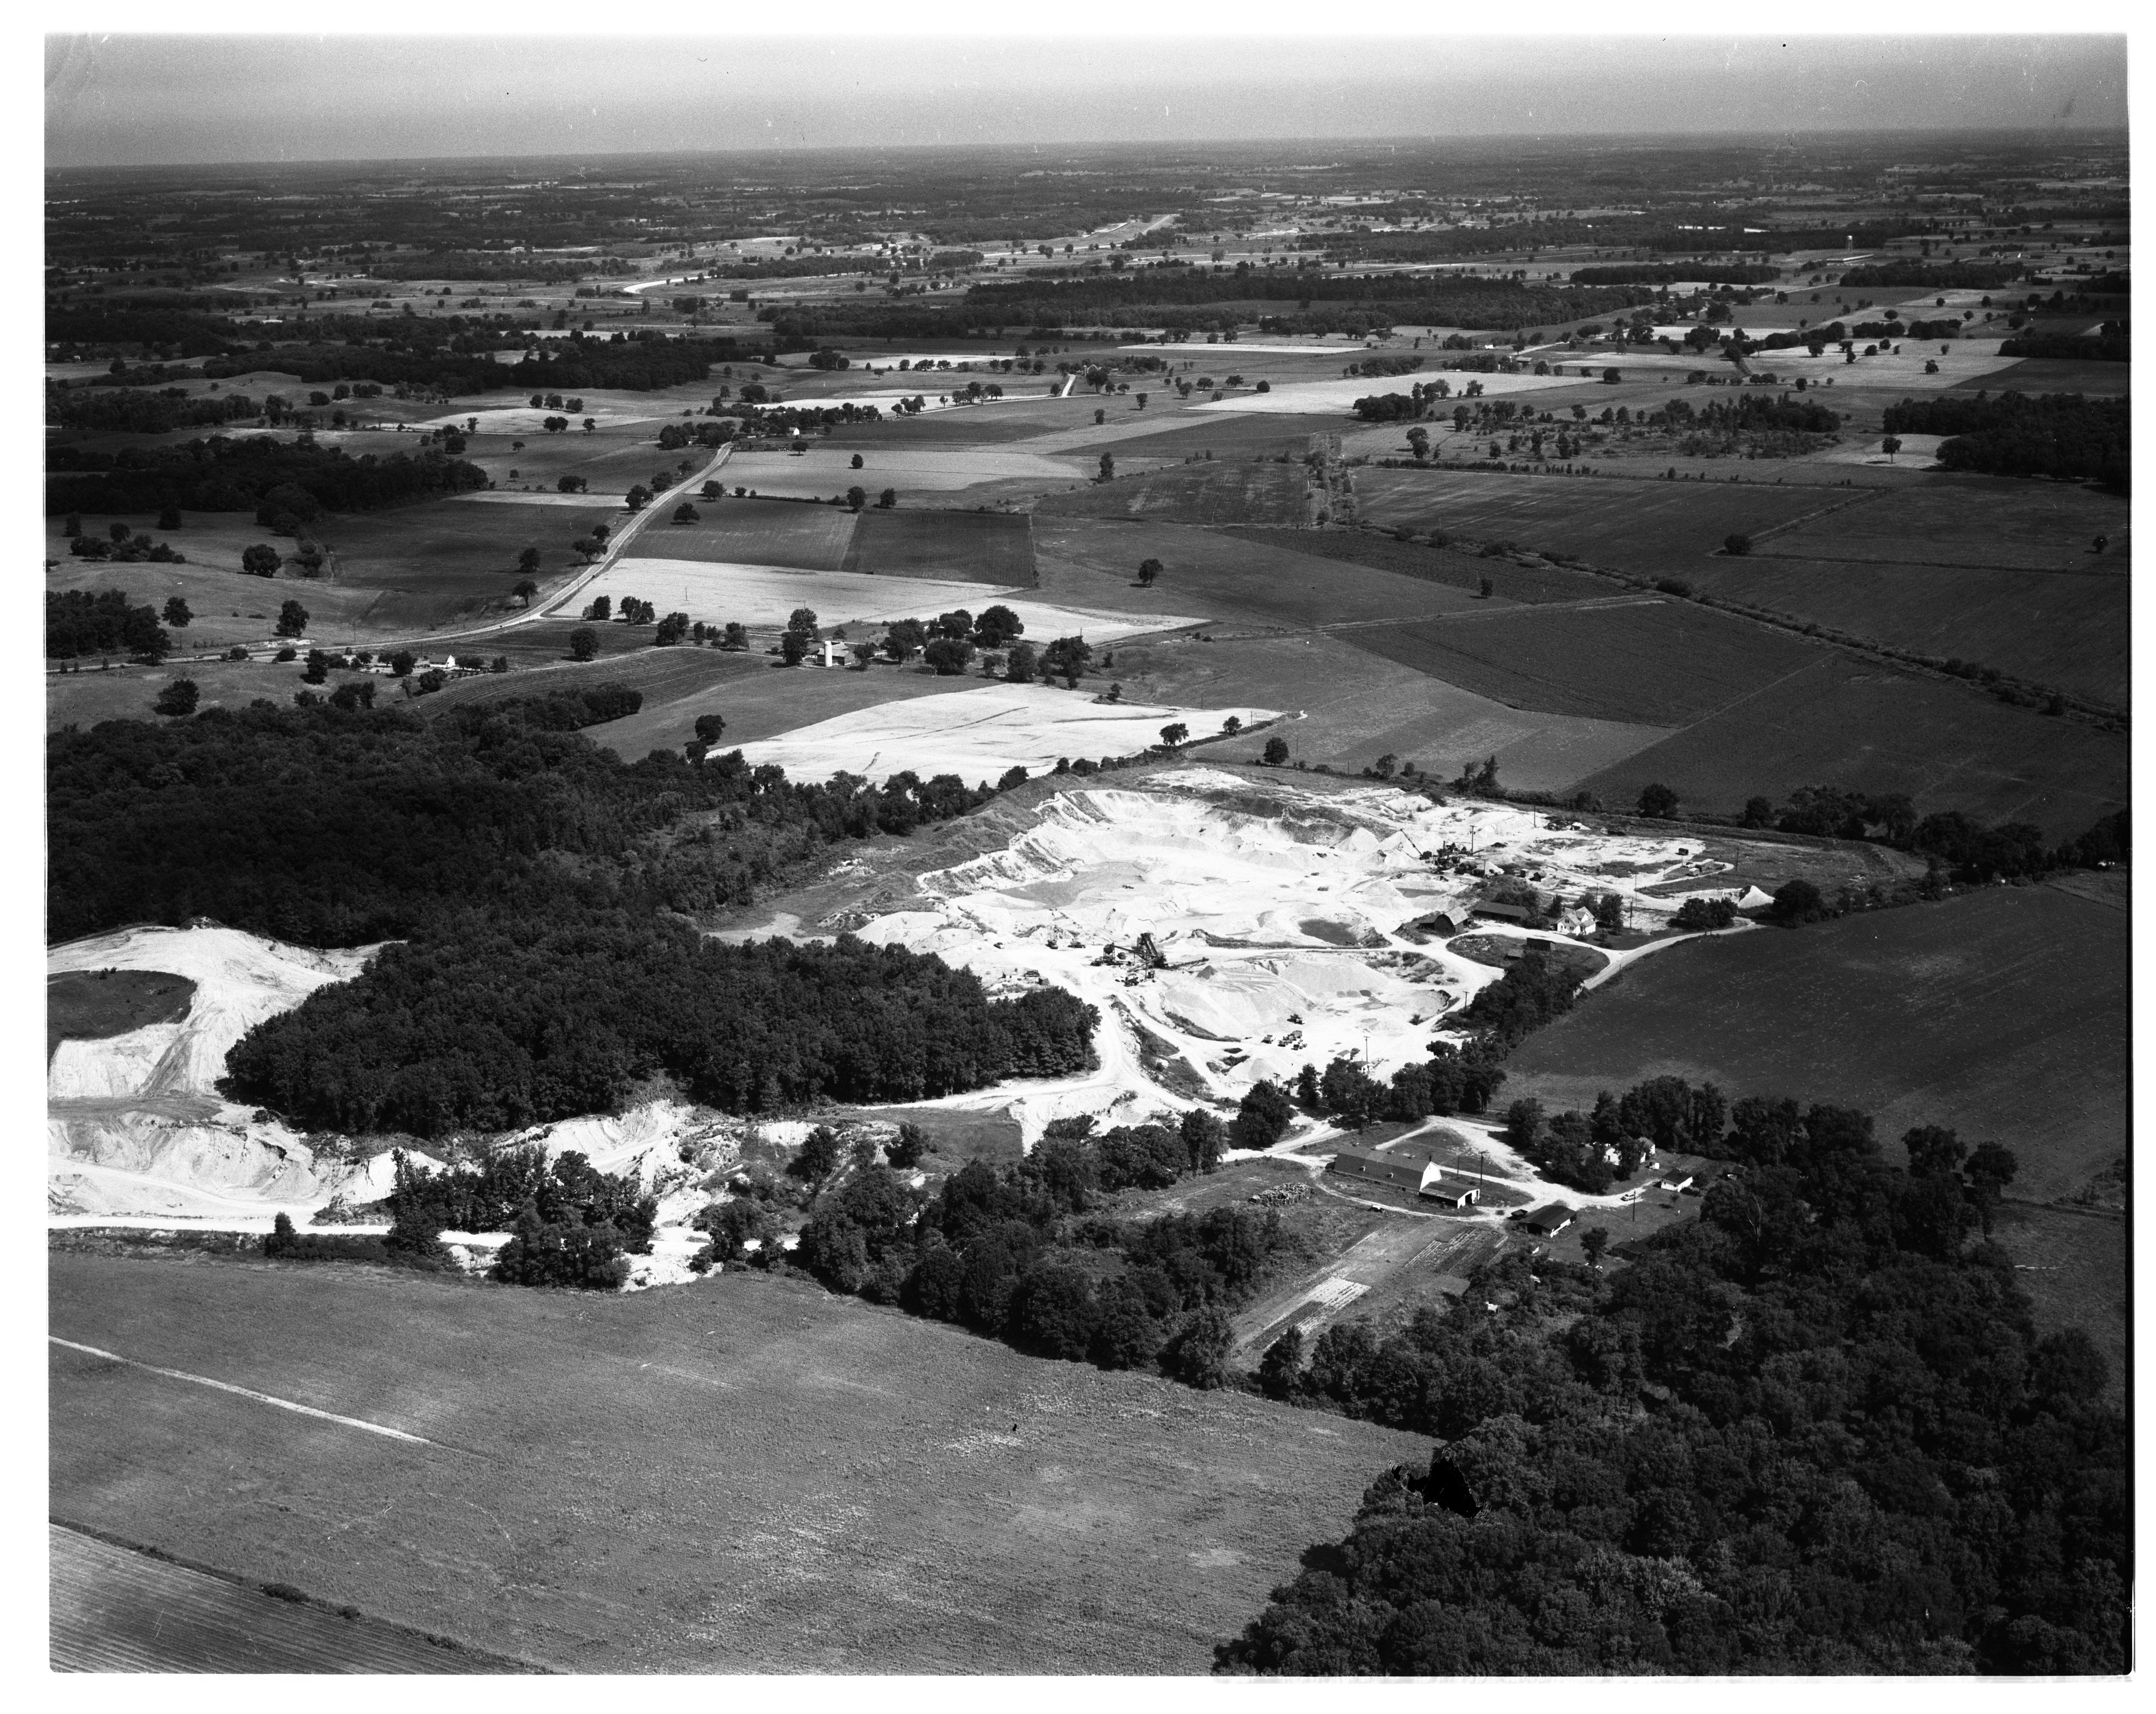 Aerial Photograph of the Perkins Road Gravel Pit, Sharon Township, July 1956 image